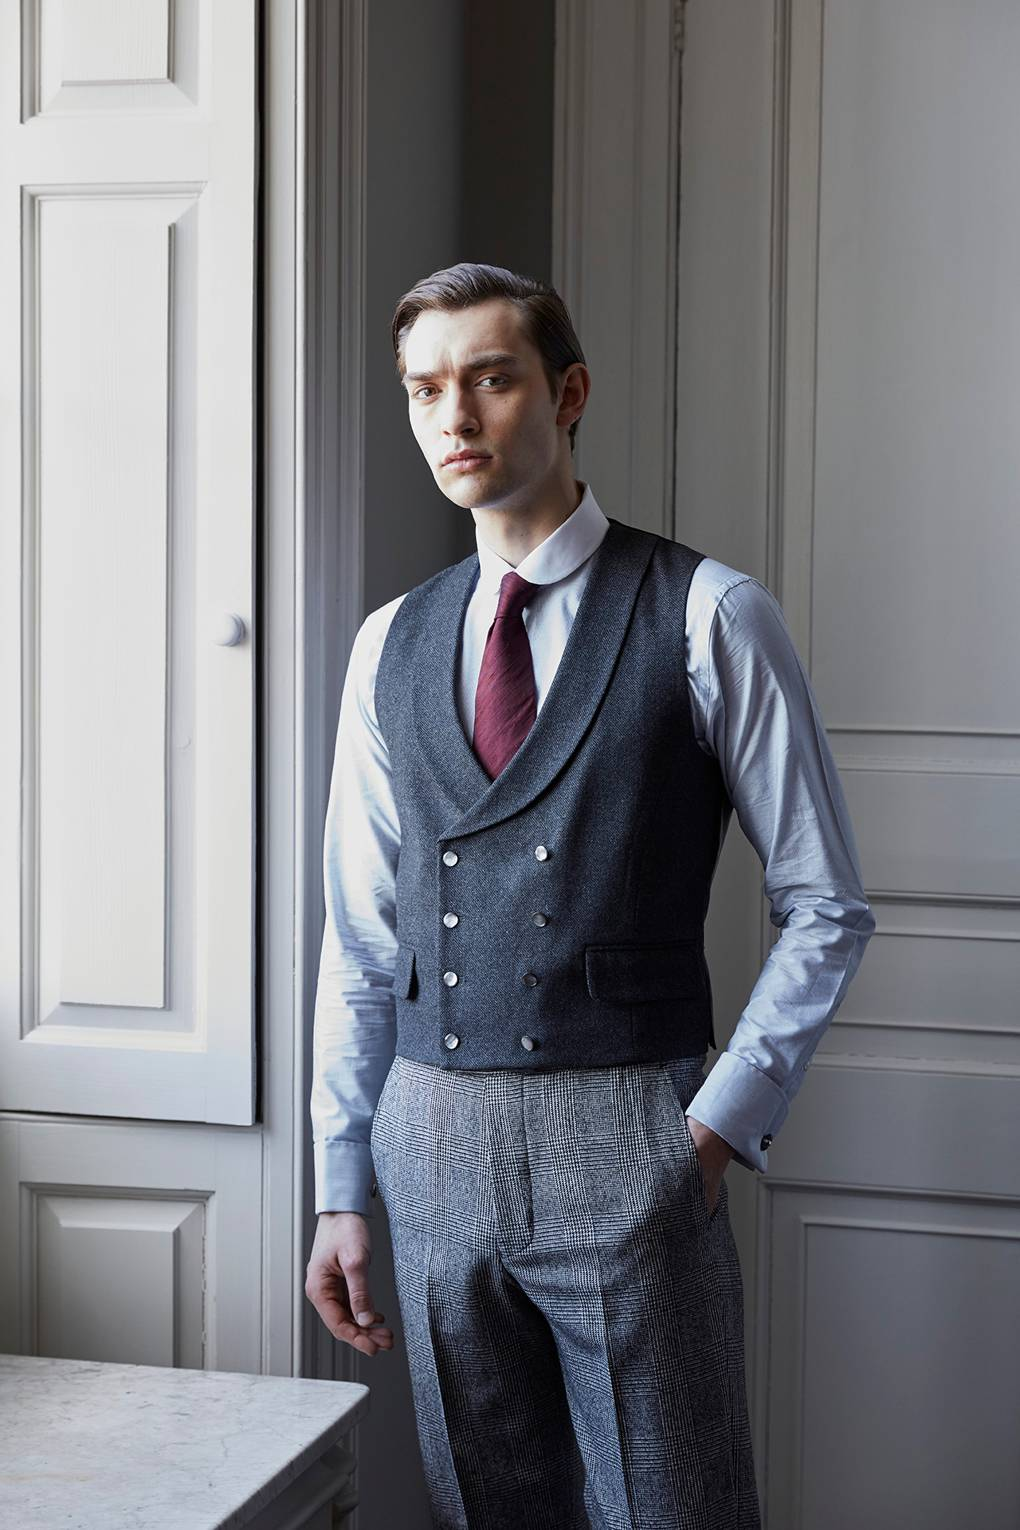 bf9fc6a554d How to wear a waistcoat